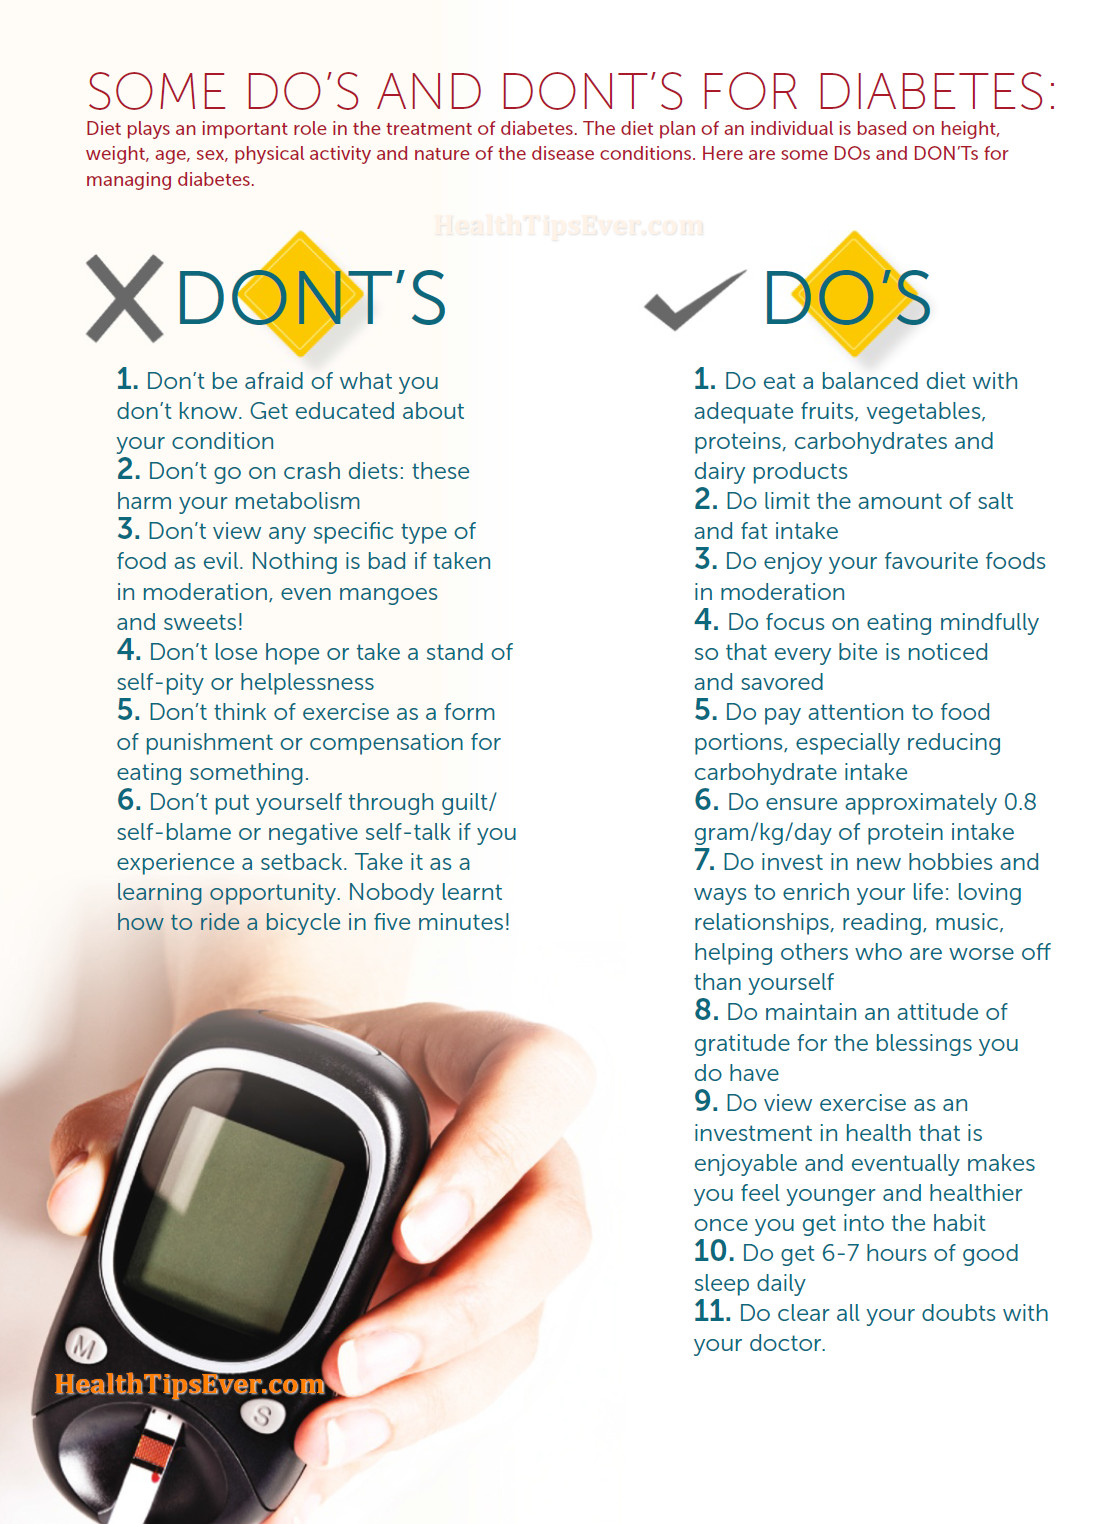 Suggestions for diabetes patients